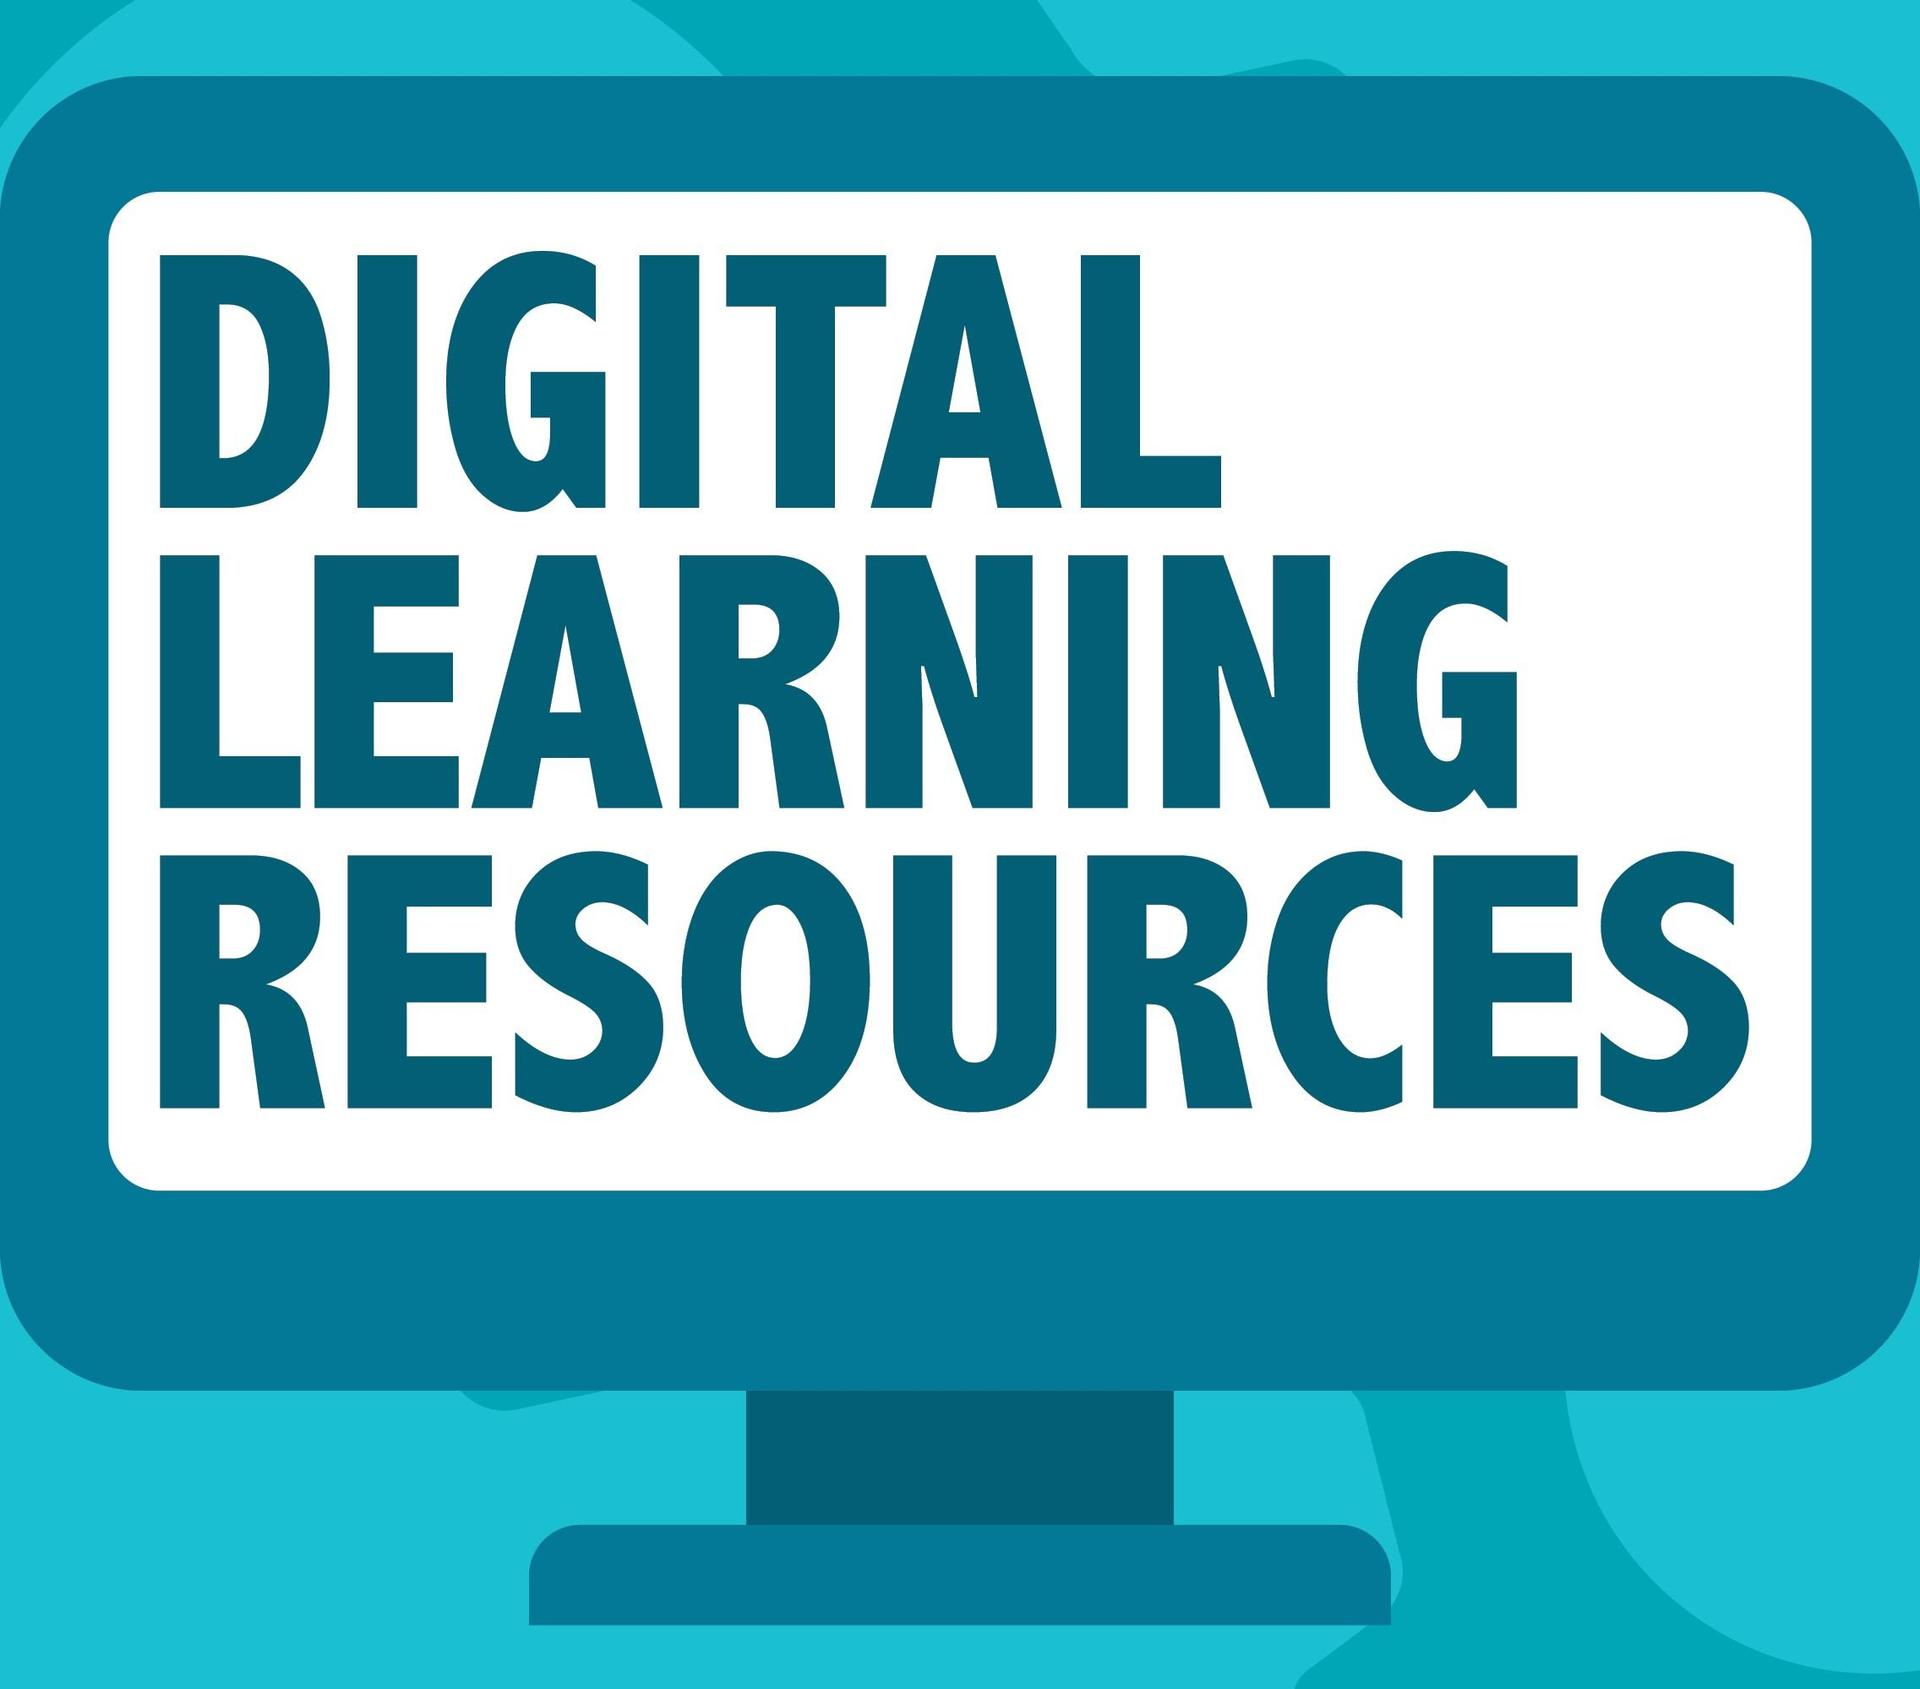 Digital Learning Resources image